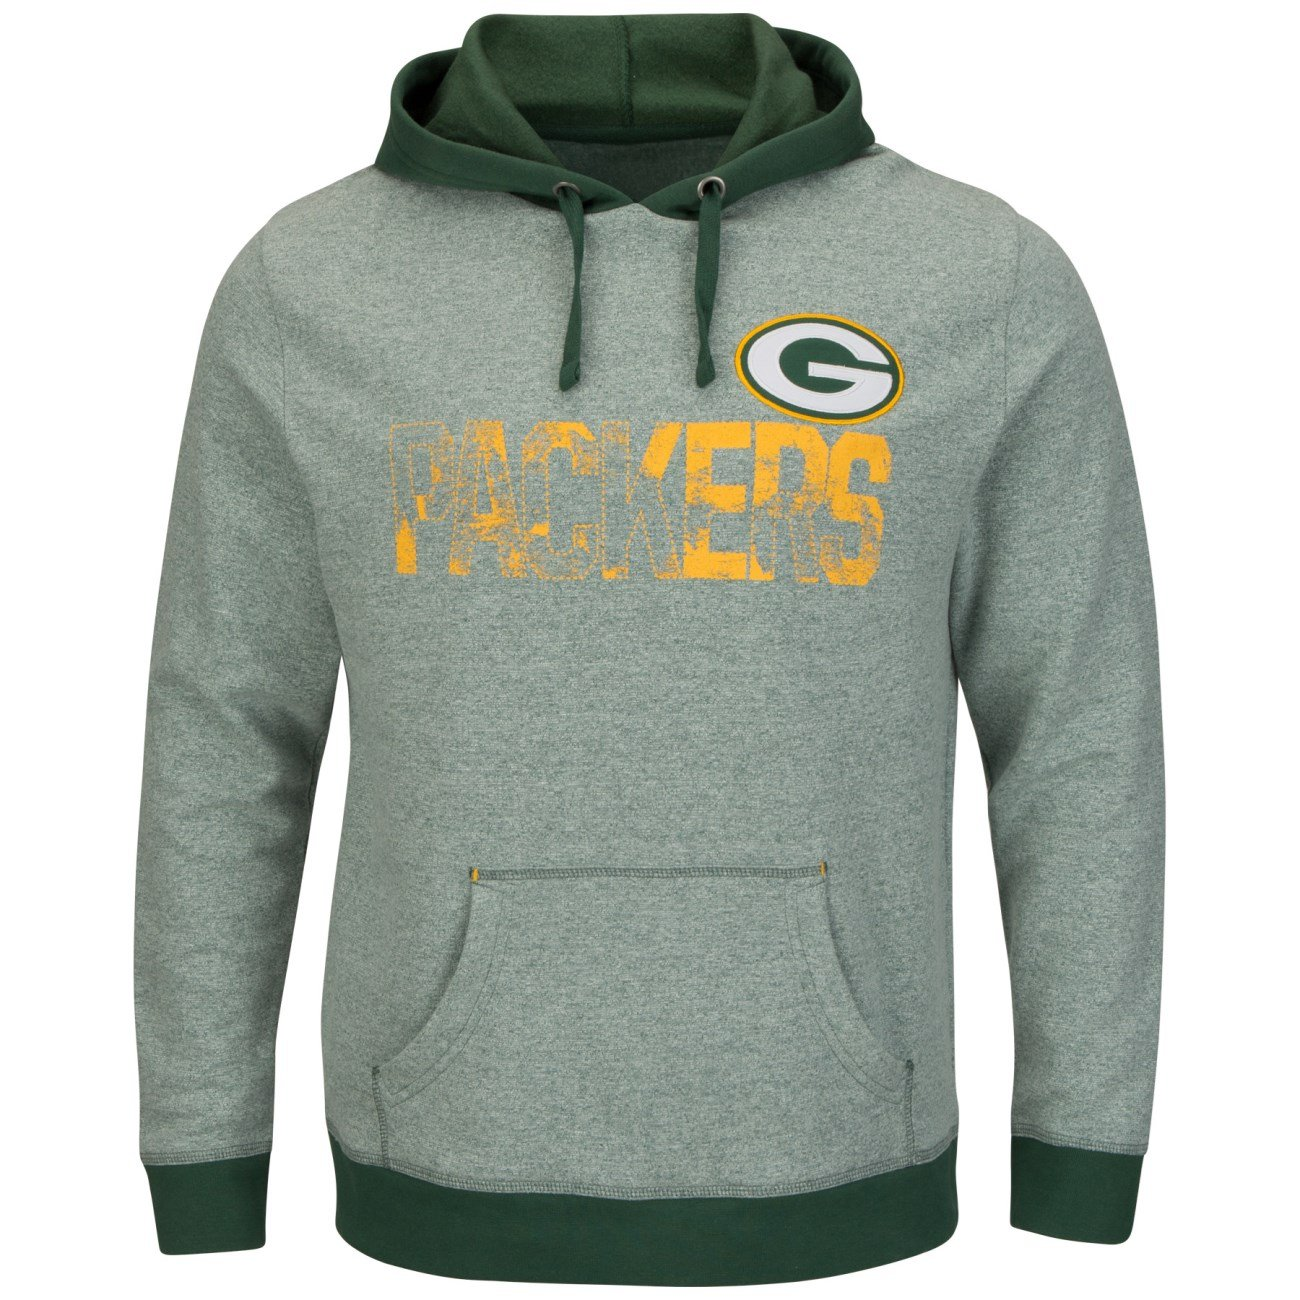 (X-Large) - Green Bay Packers Majestic NFL